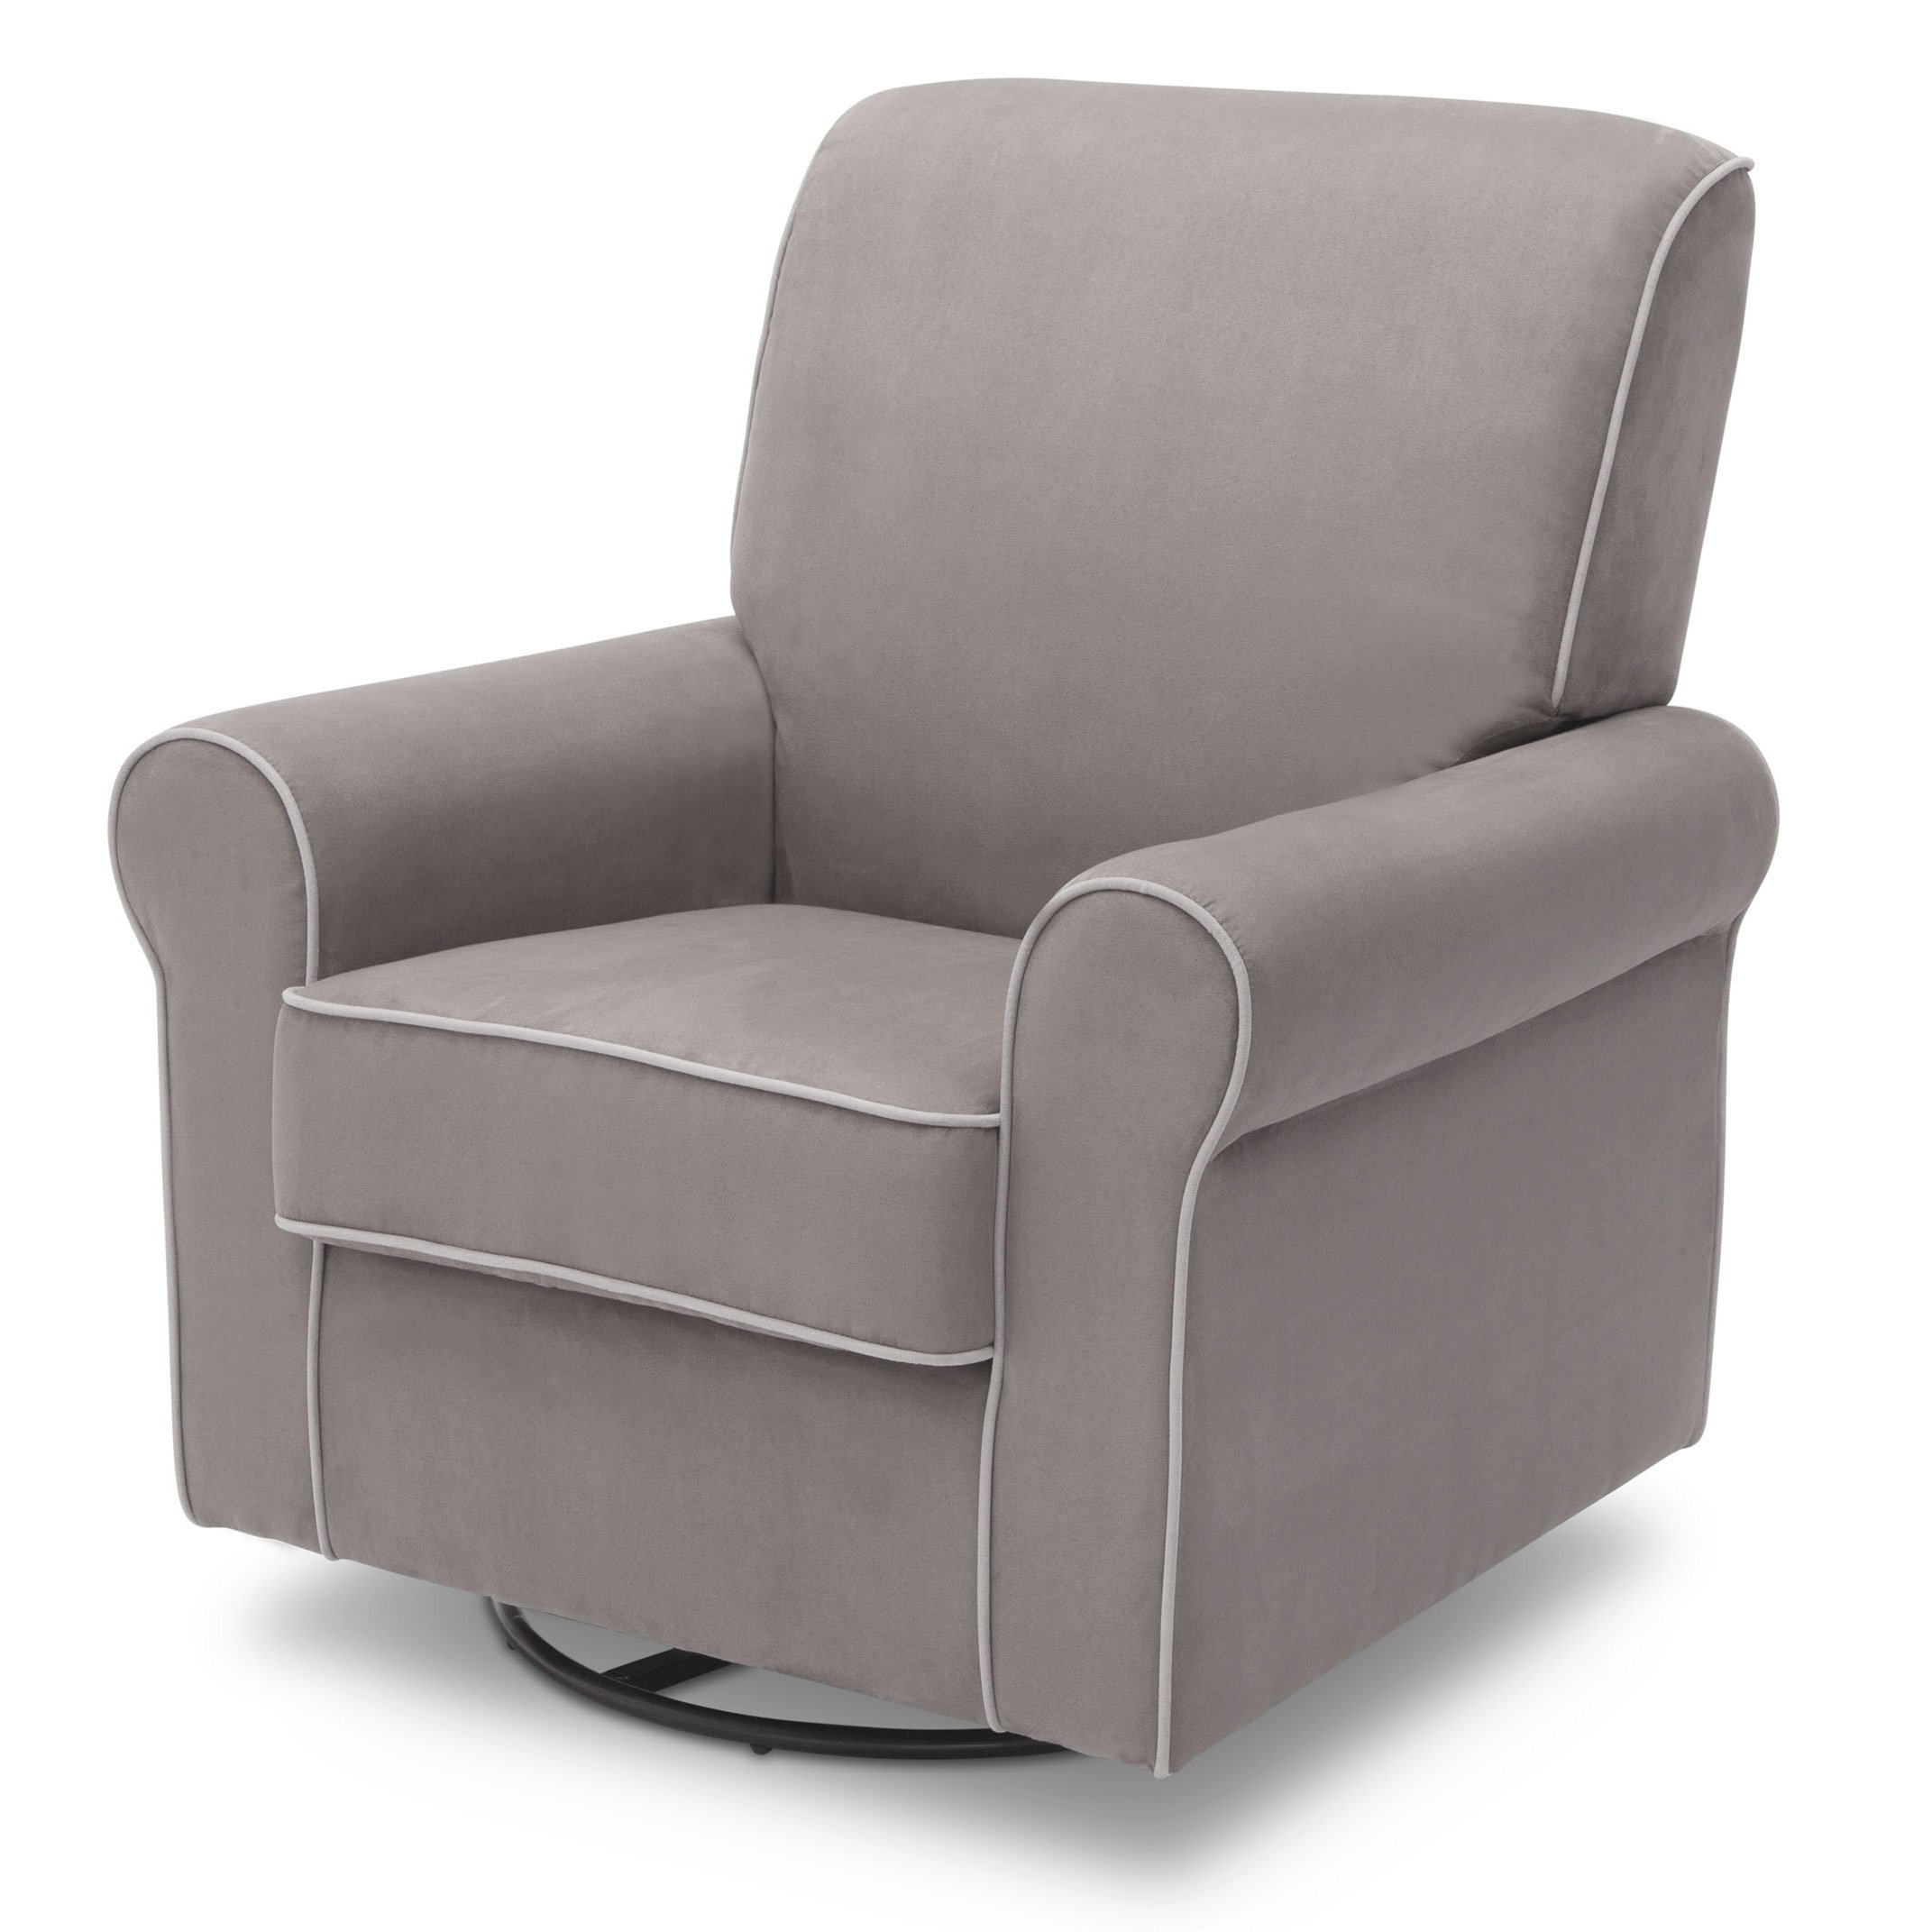 Delta Children Rowen Glider Swivel Rocker Chair, Dove Grey by Delta Children